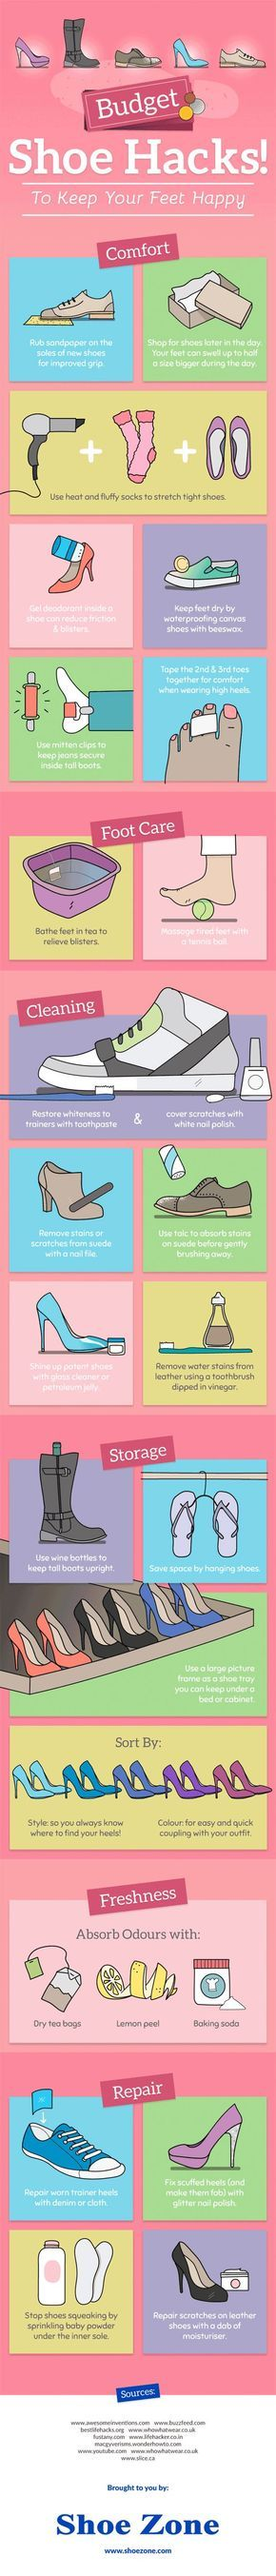 10 Amazing Fashion Tips Posts